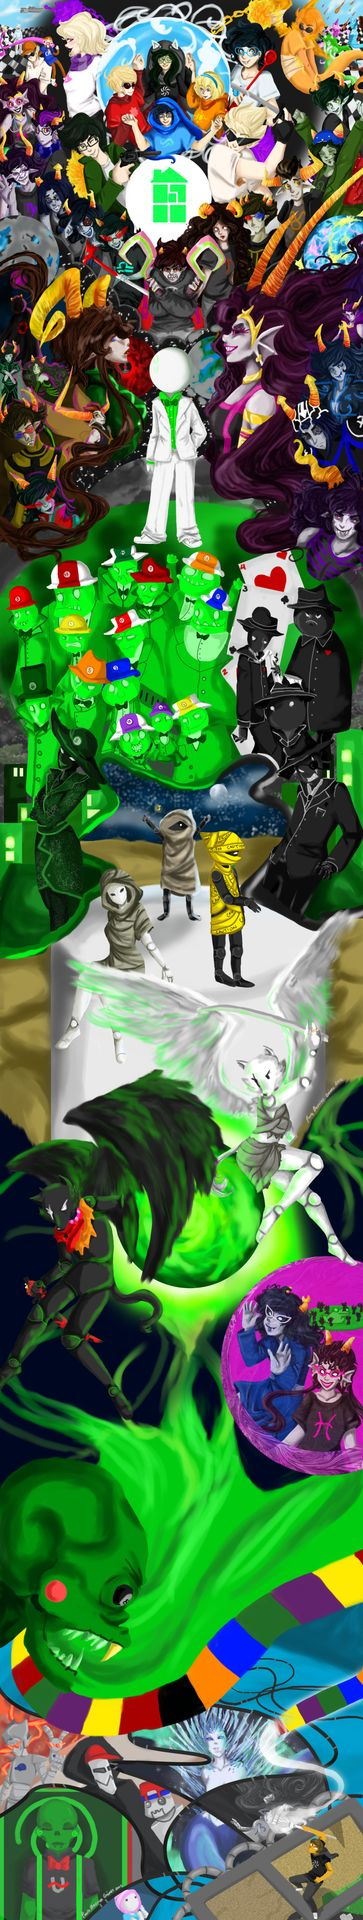 homestuck let me tell you about homestuck huge poster what